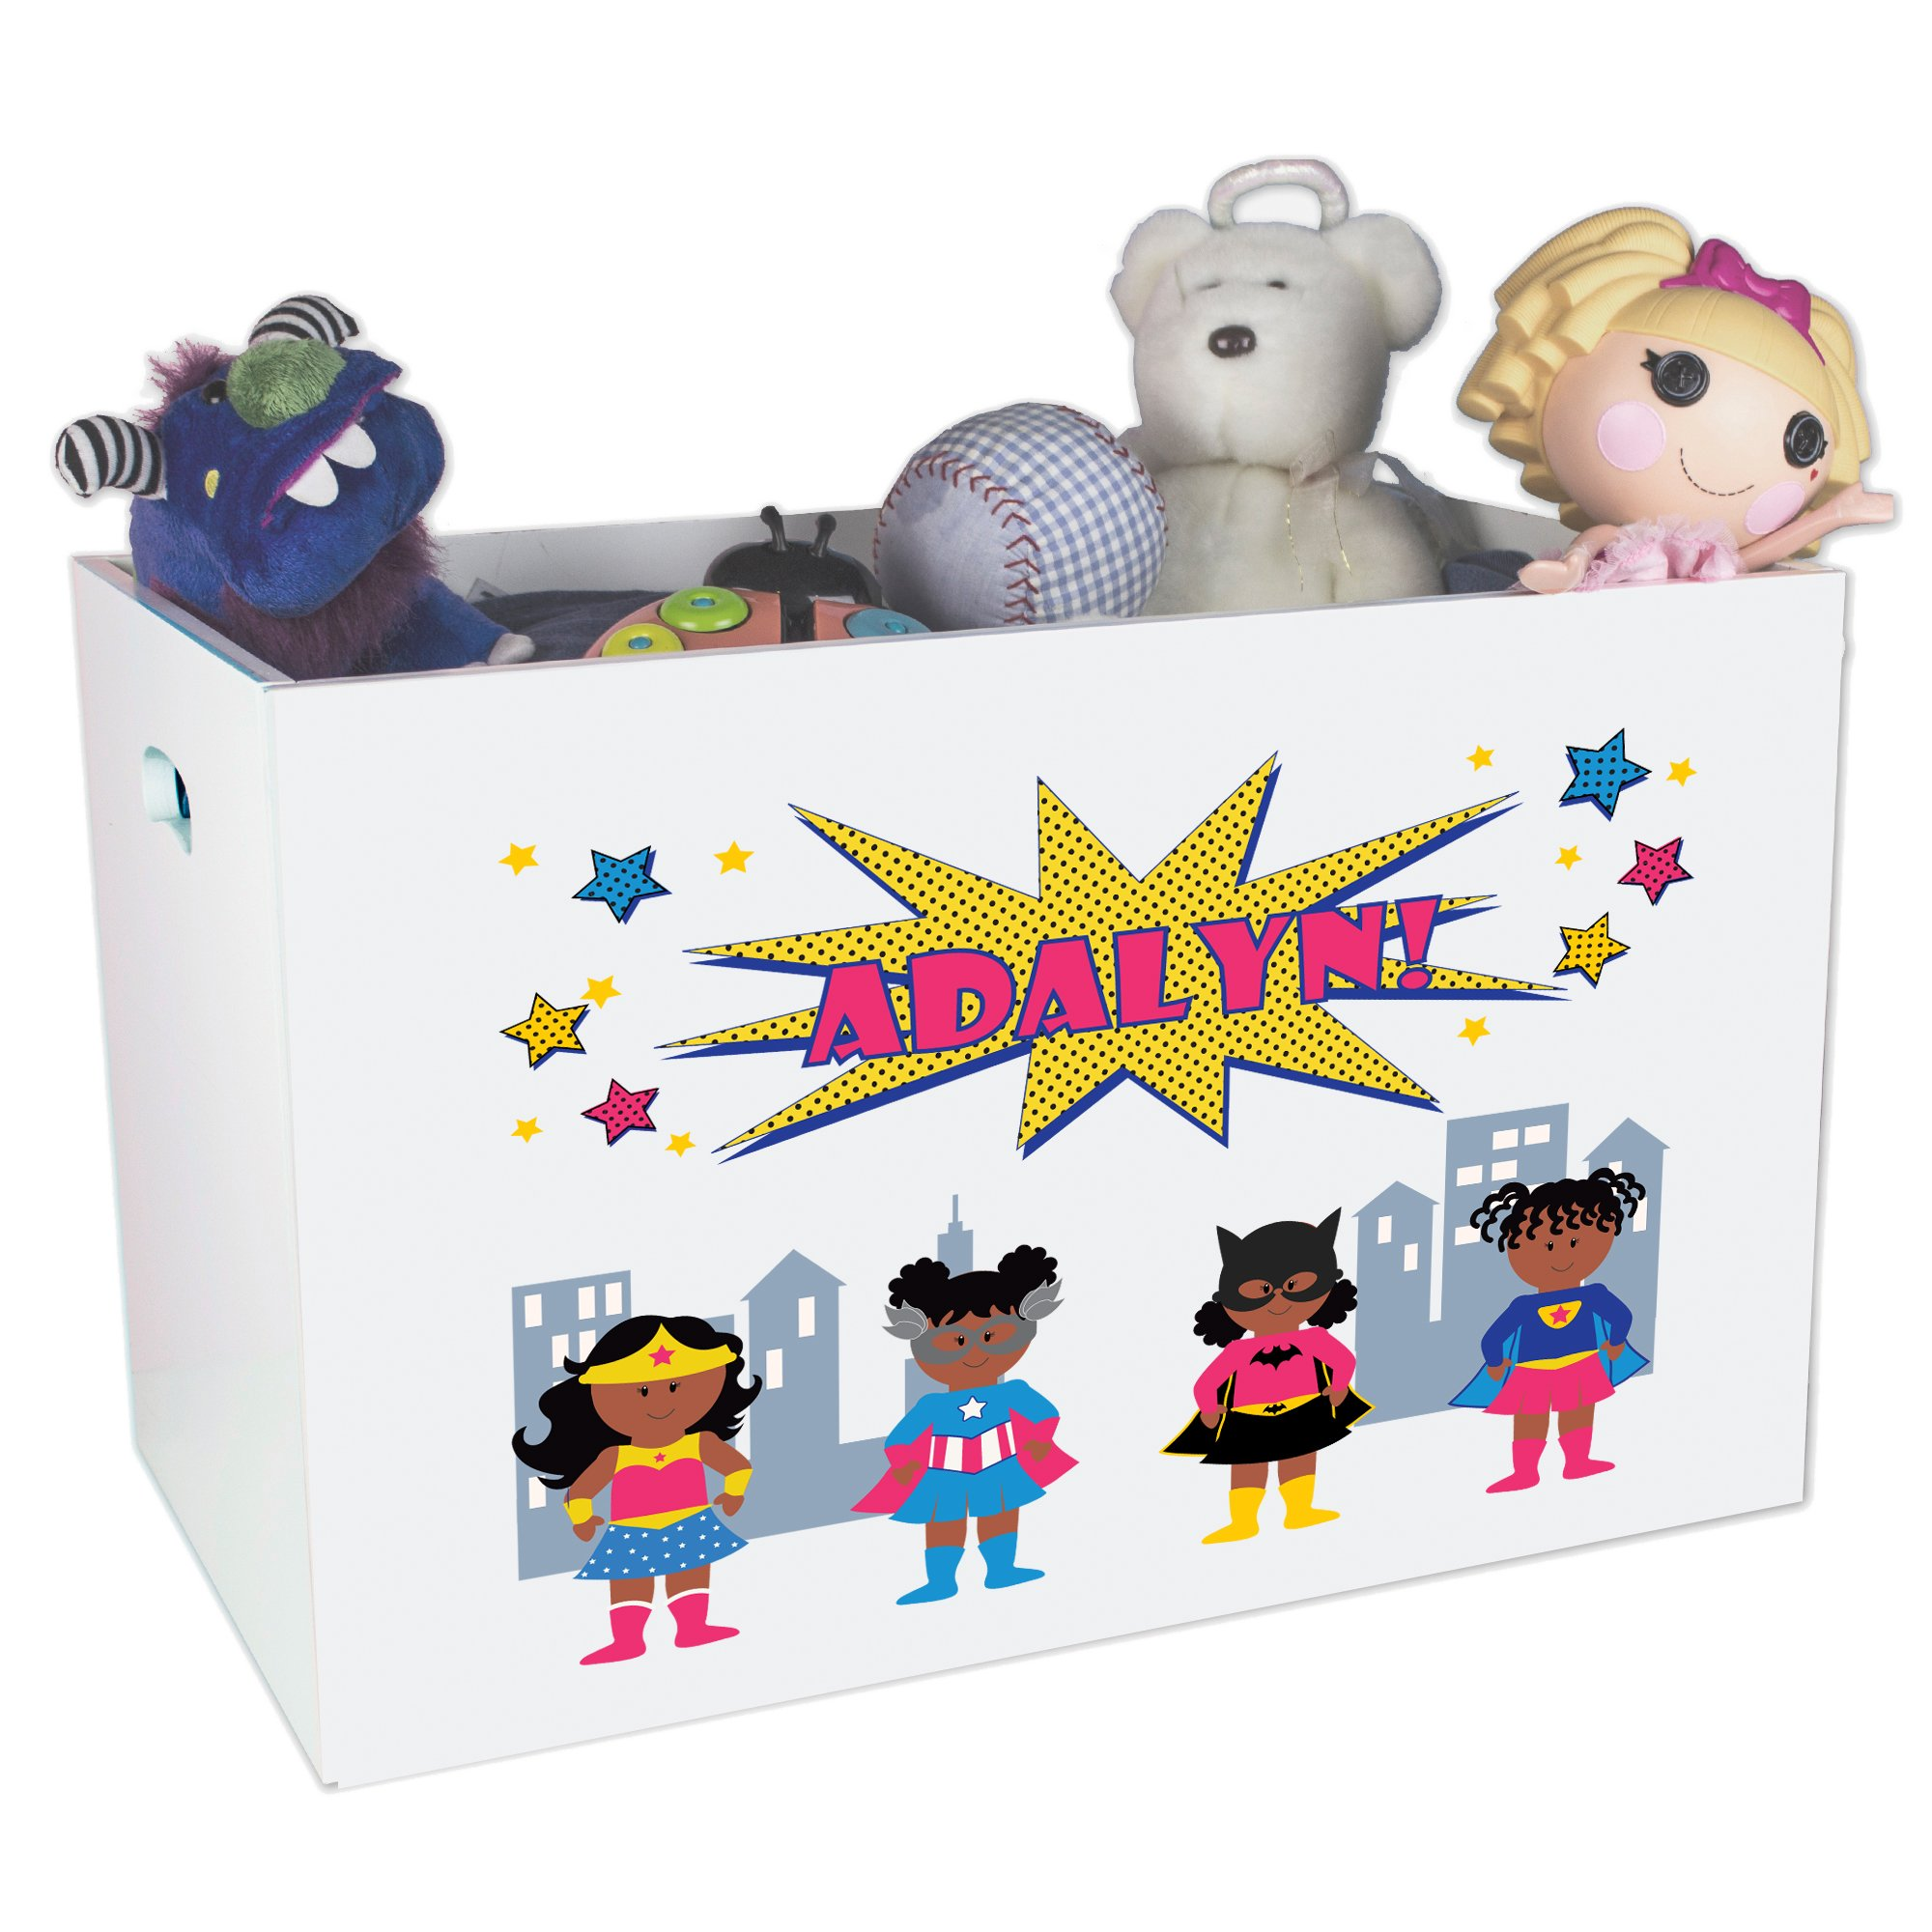 Childrens Personalized Open Toy Chest For Nursery Girls Superhero African American